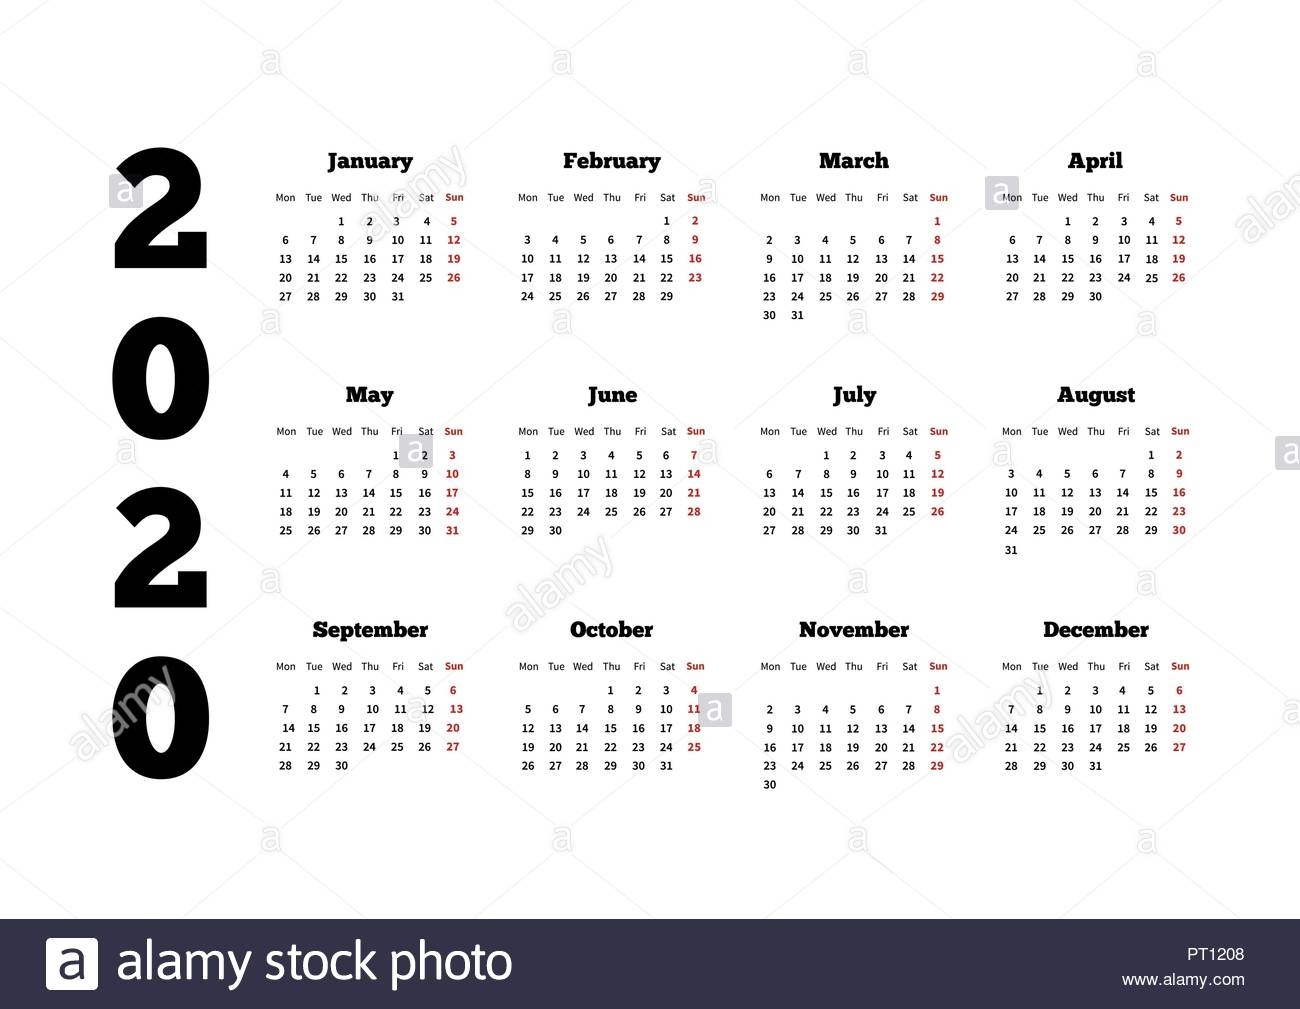 Monday Start Calendar 2020 - Colona.rsd7 with 2020 Calendar With Monday Start